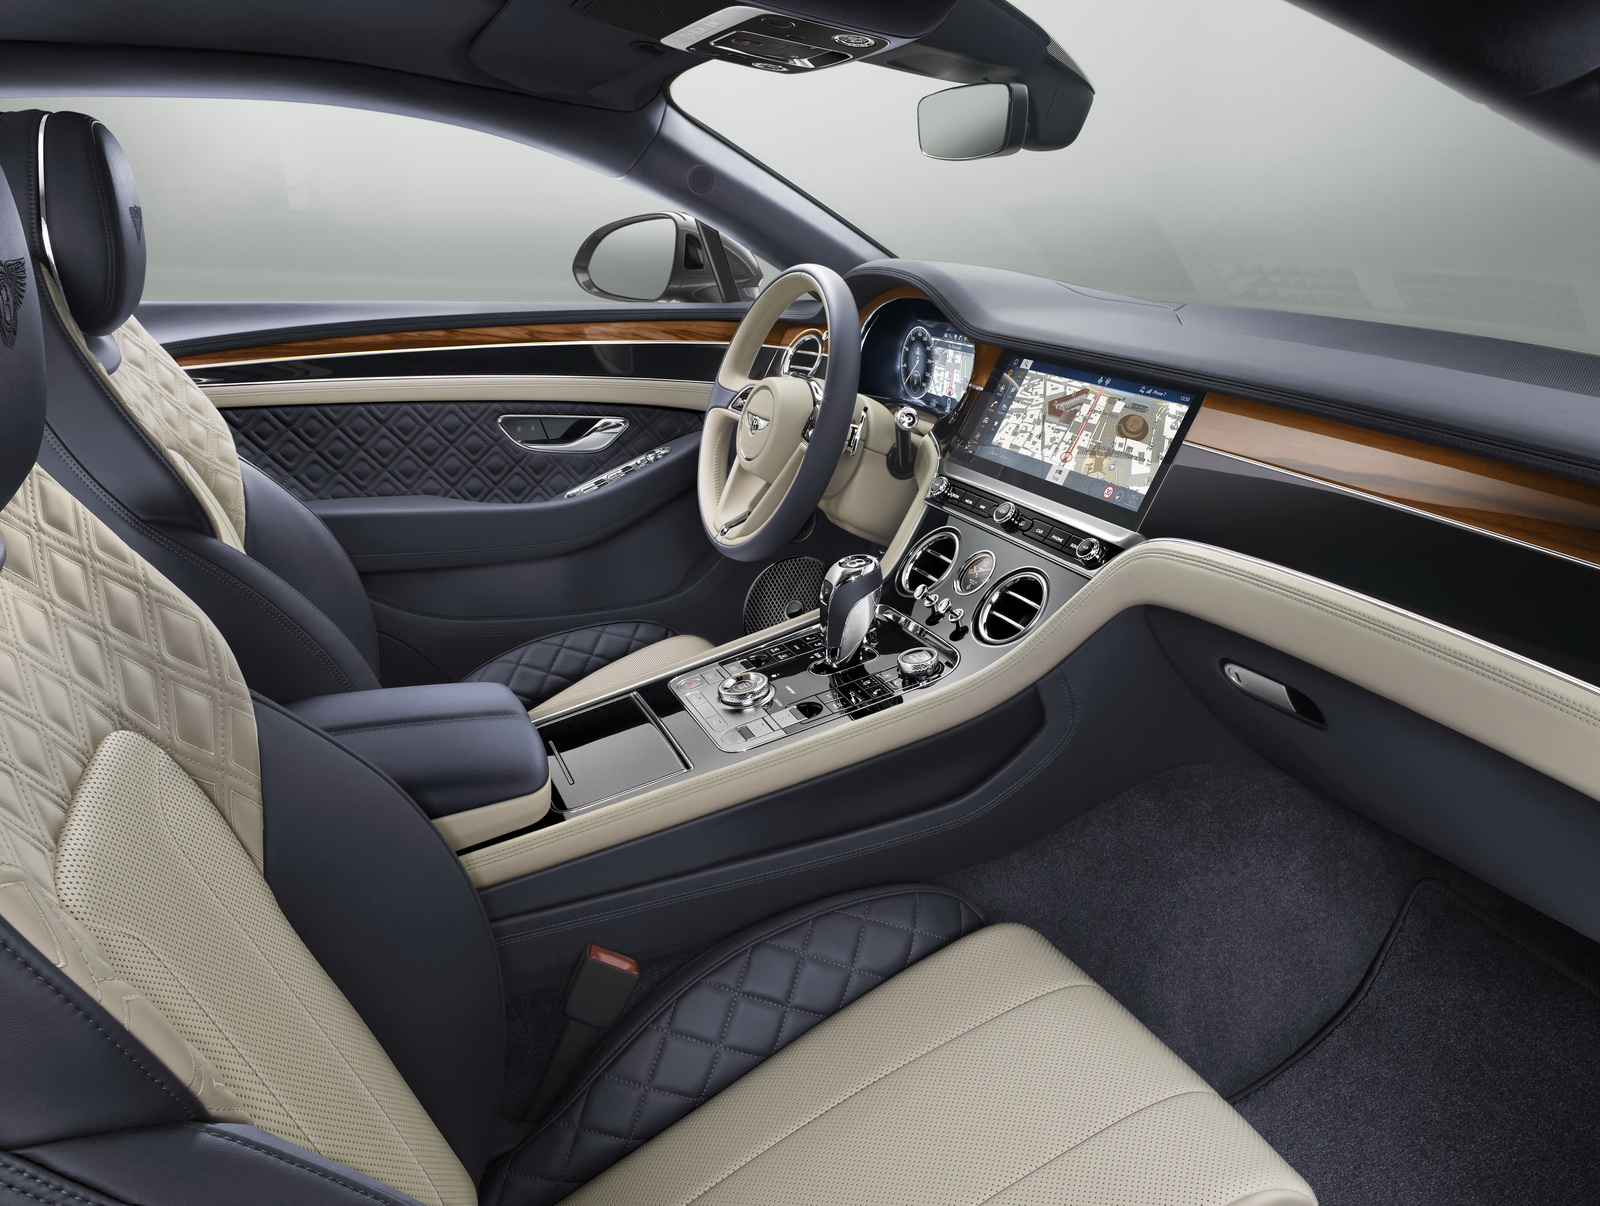 Bentley_Continental_GT_Bang_&_Olufsen_10